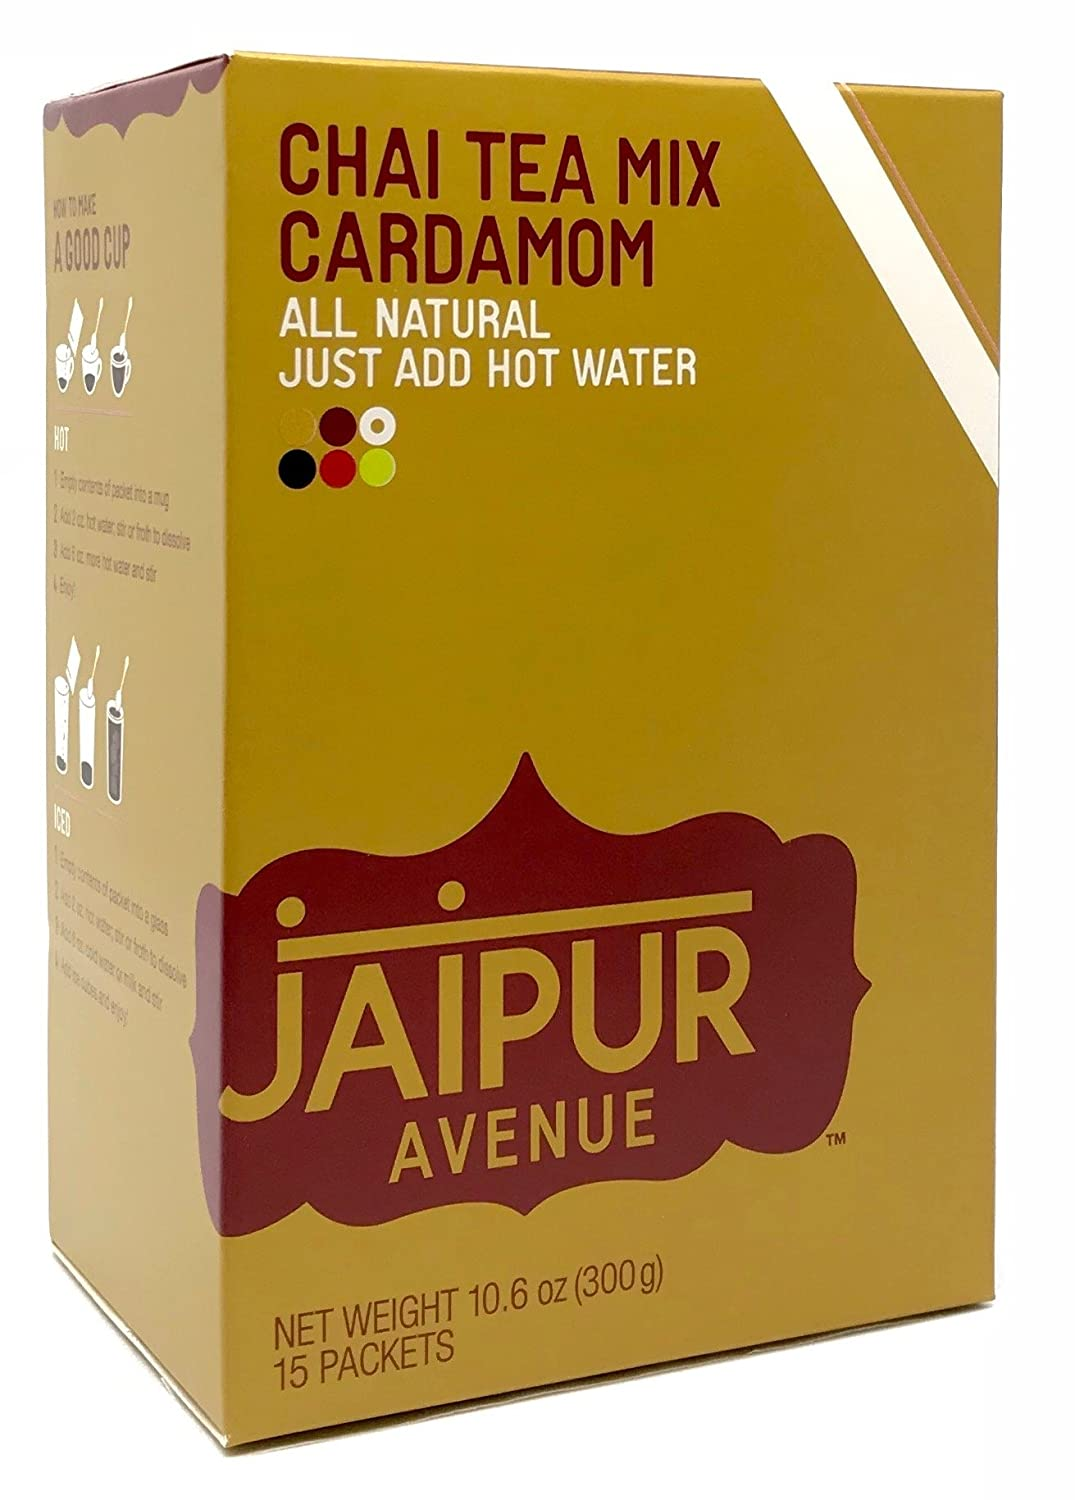 Jaipur Avenue Chai Tea Mix Cardamom